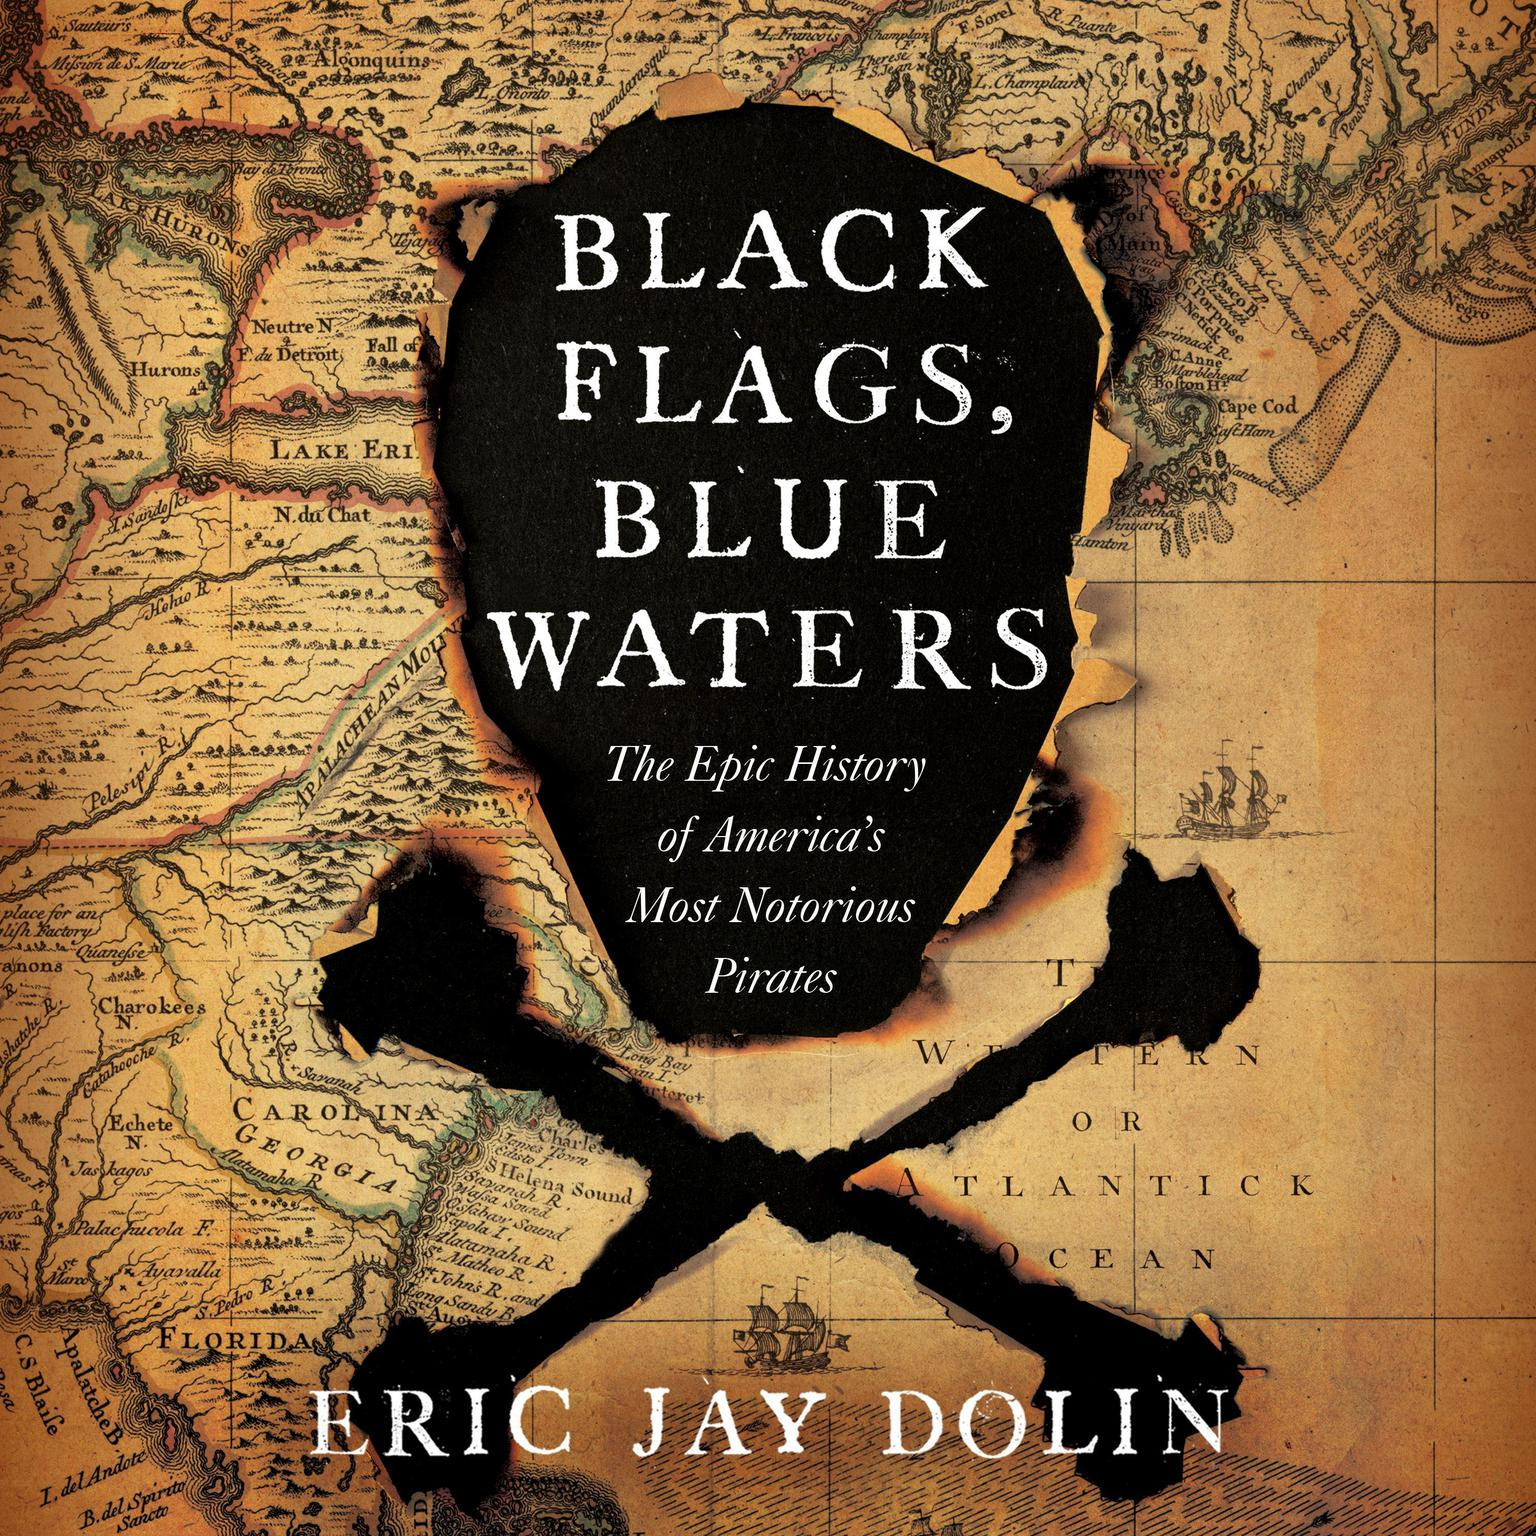 Black Flags, Blue Waters: The Epic History of Americas Most Notorious Pirates Audiobook, by Eric Jay Dolin